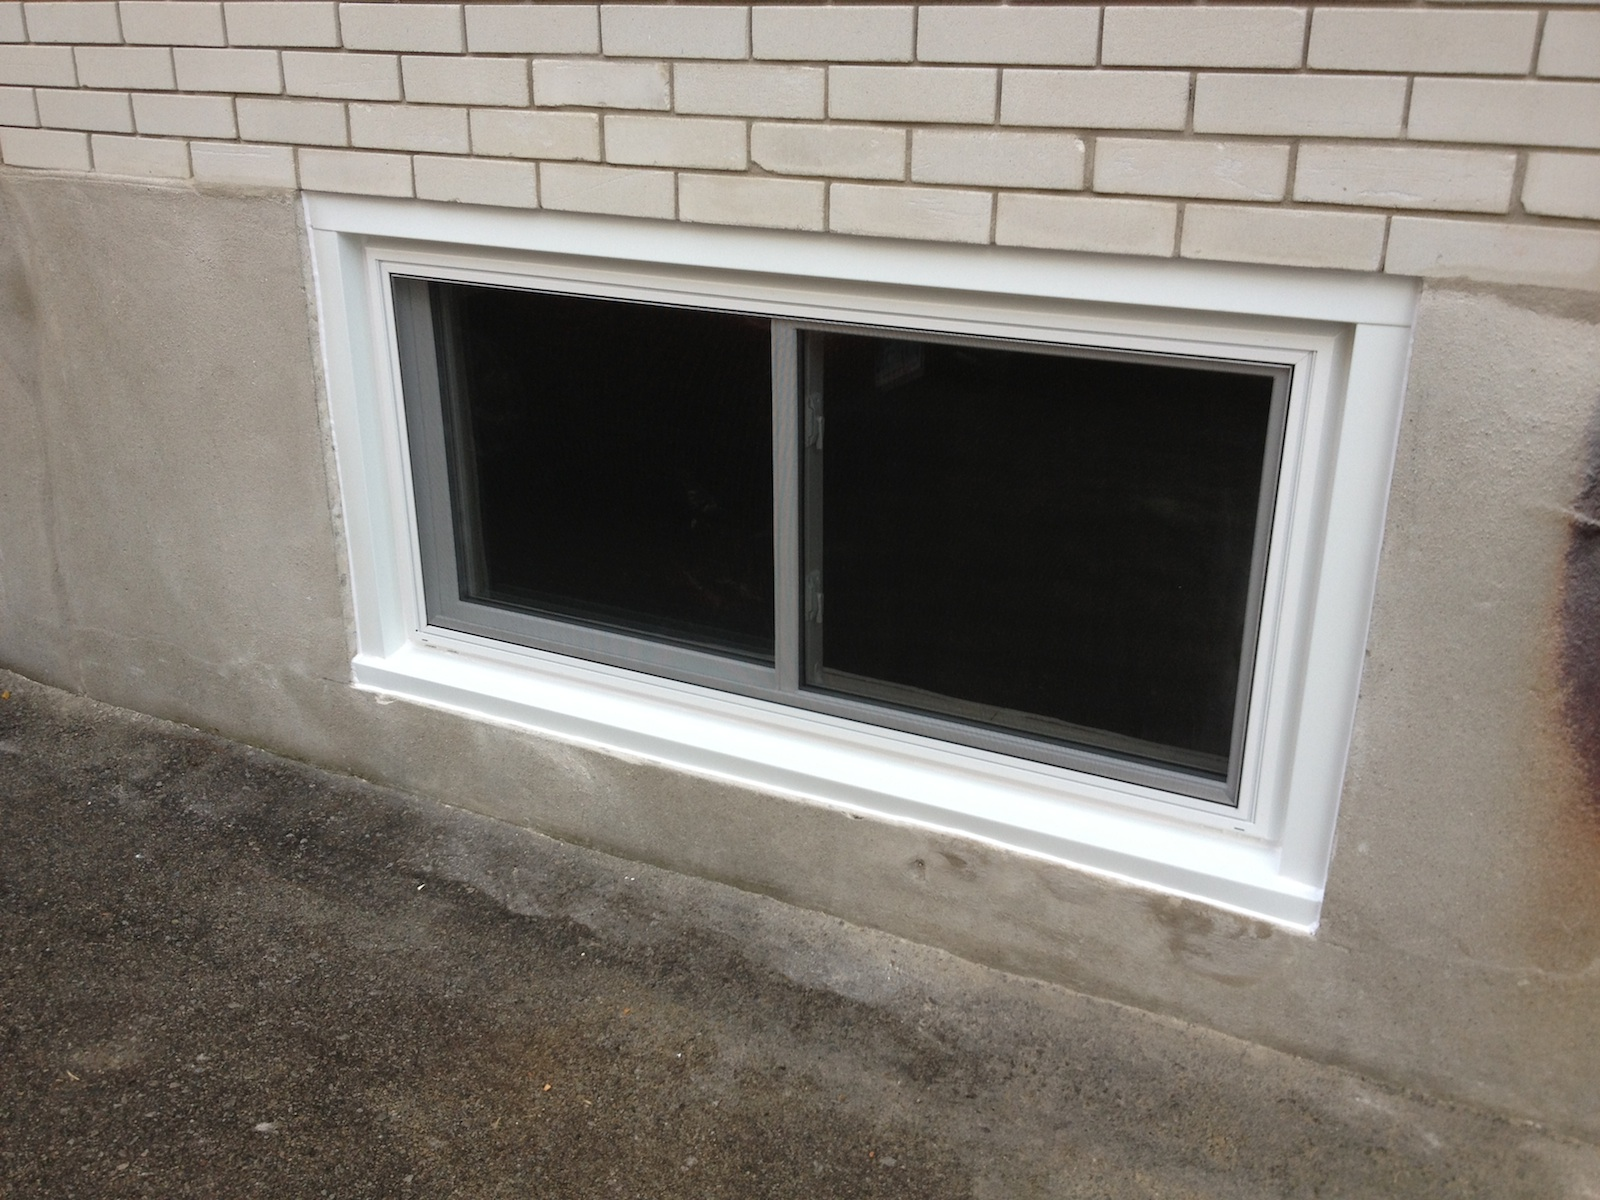 Basement window finishing homeimprovement for Basement window replacement